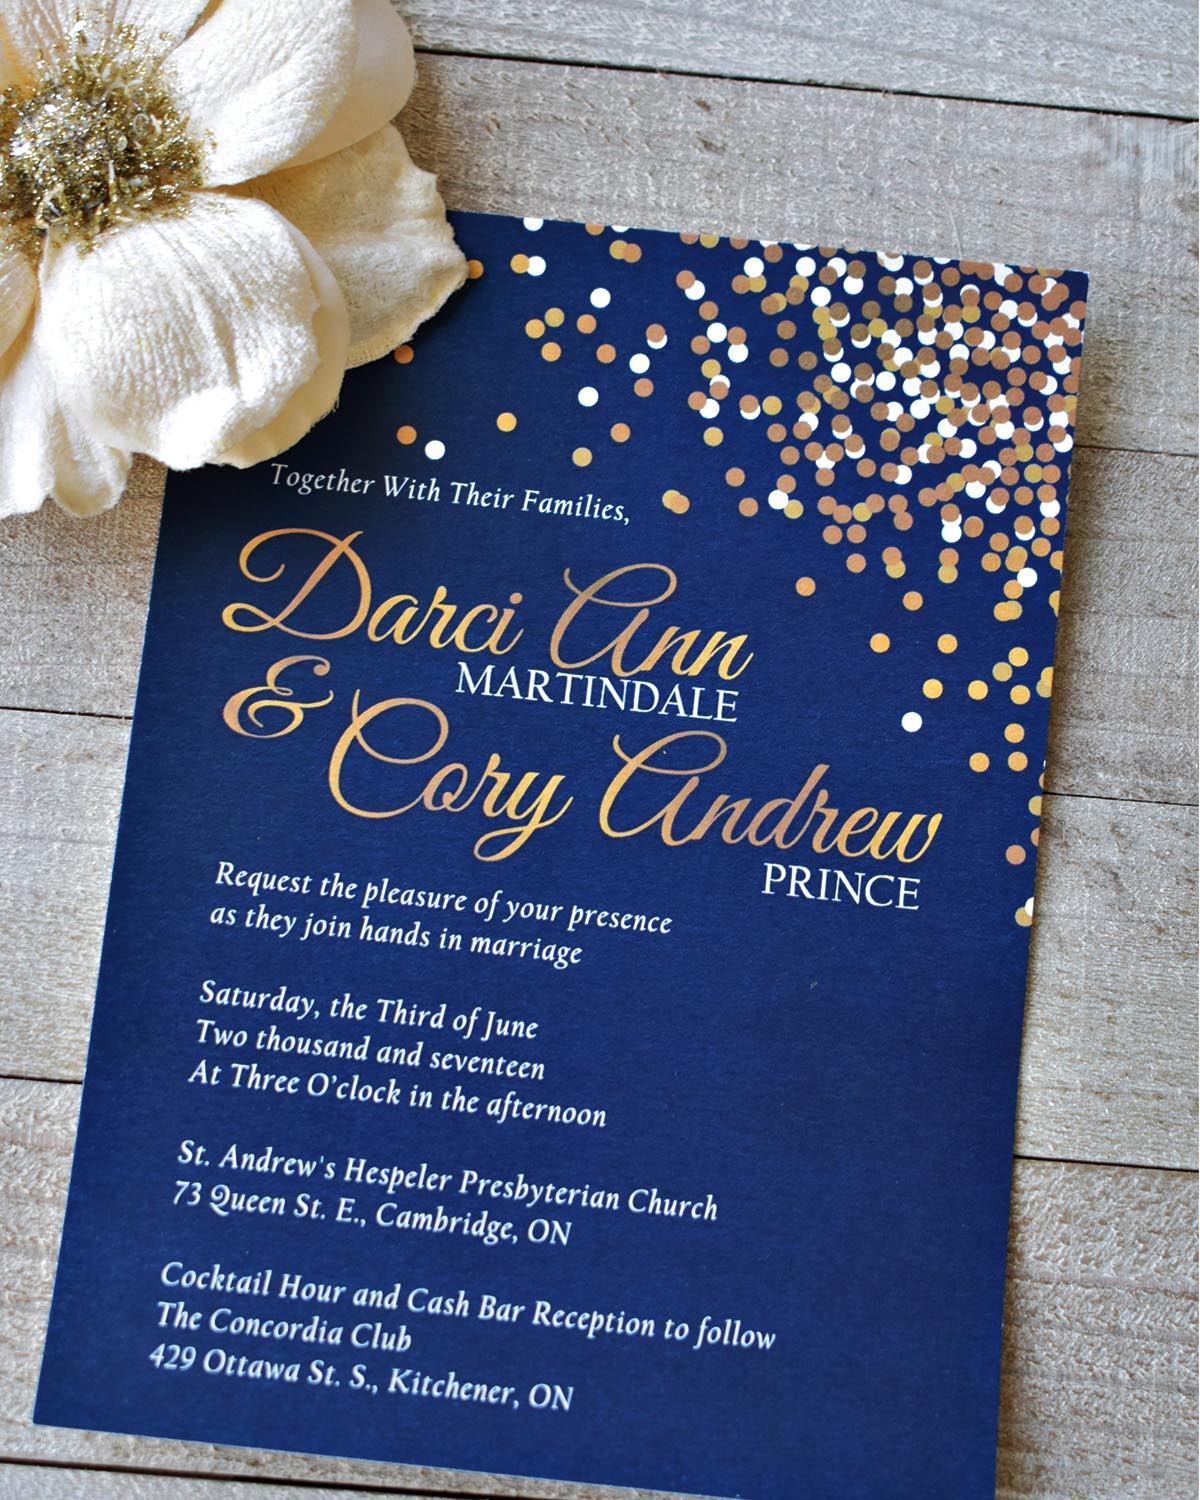 Cash Bar Wording On Wedding Invitations Images Wedding And Party